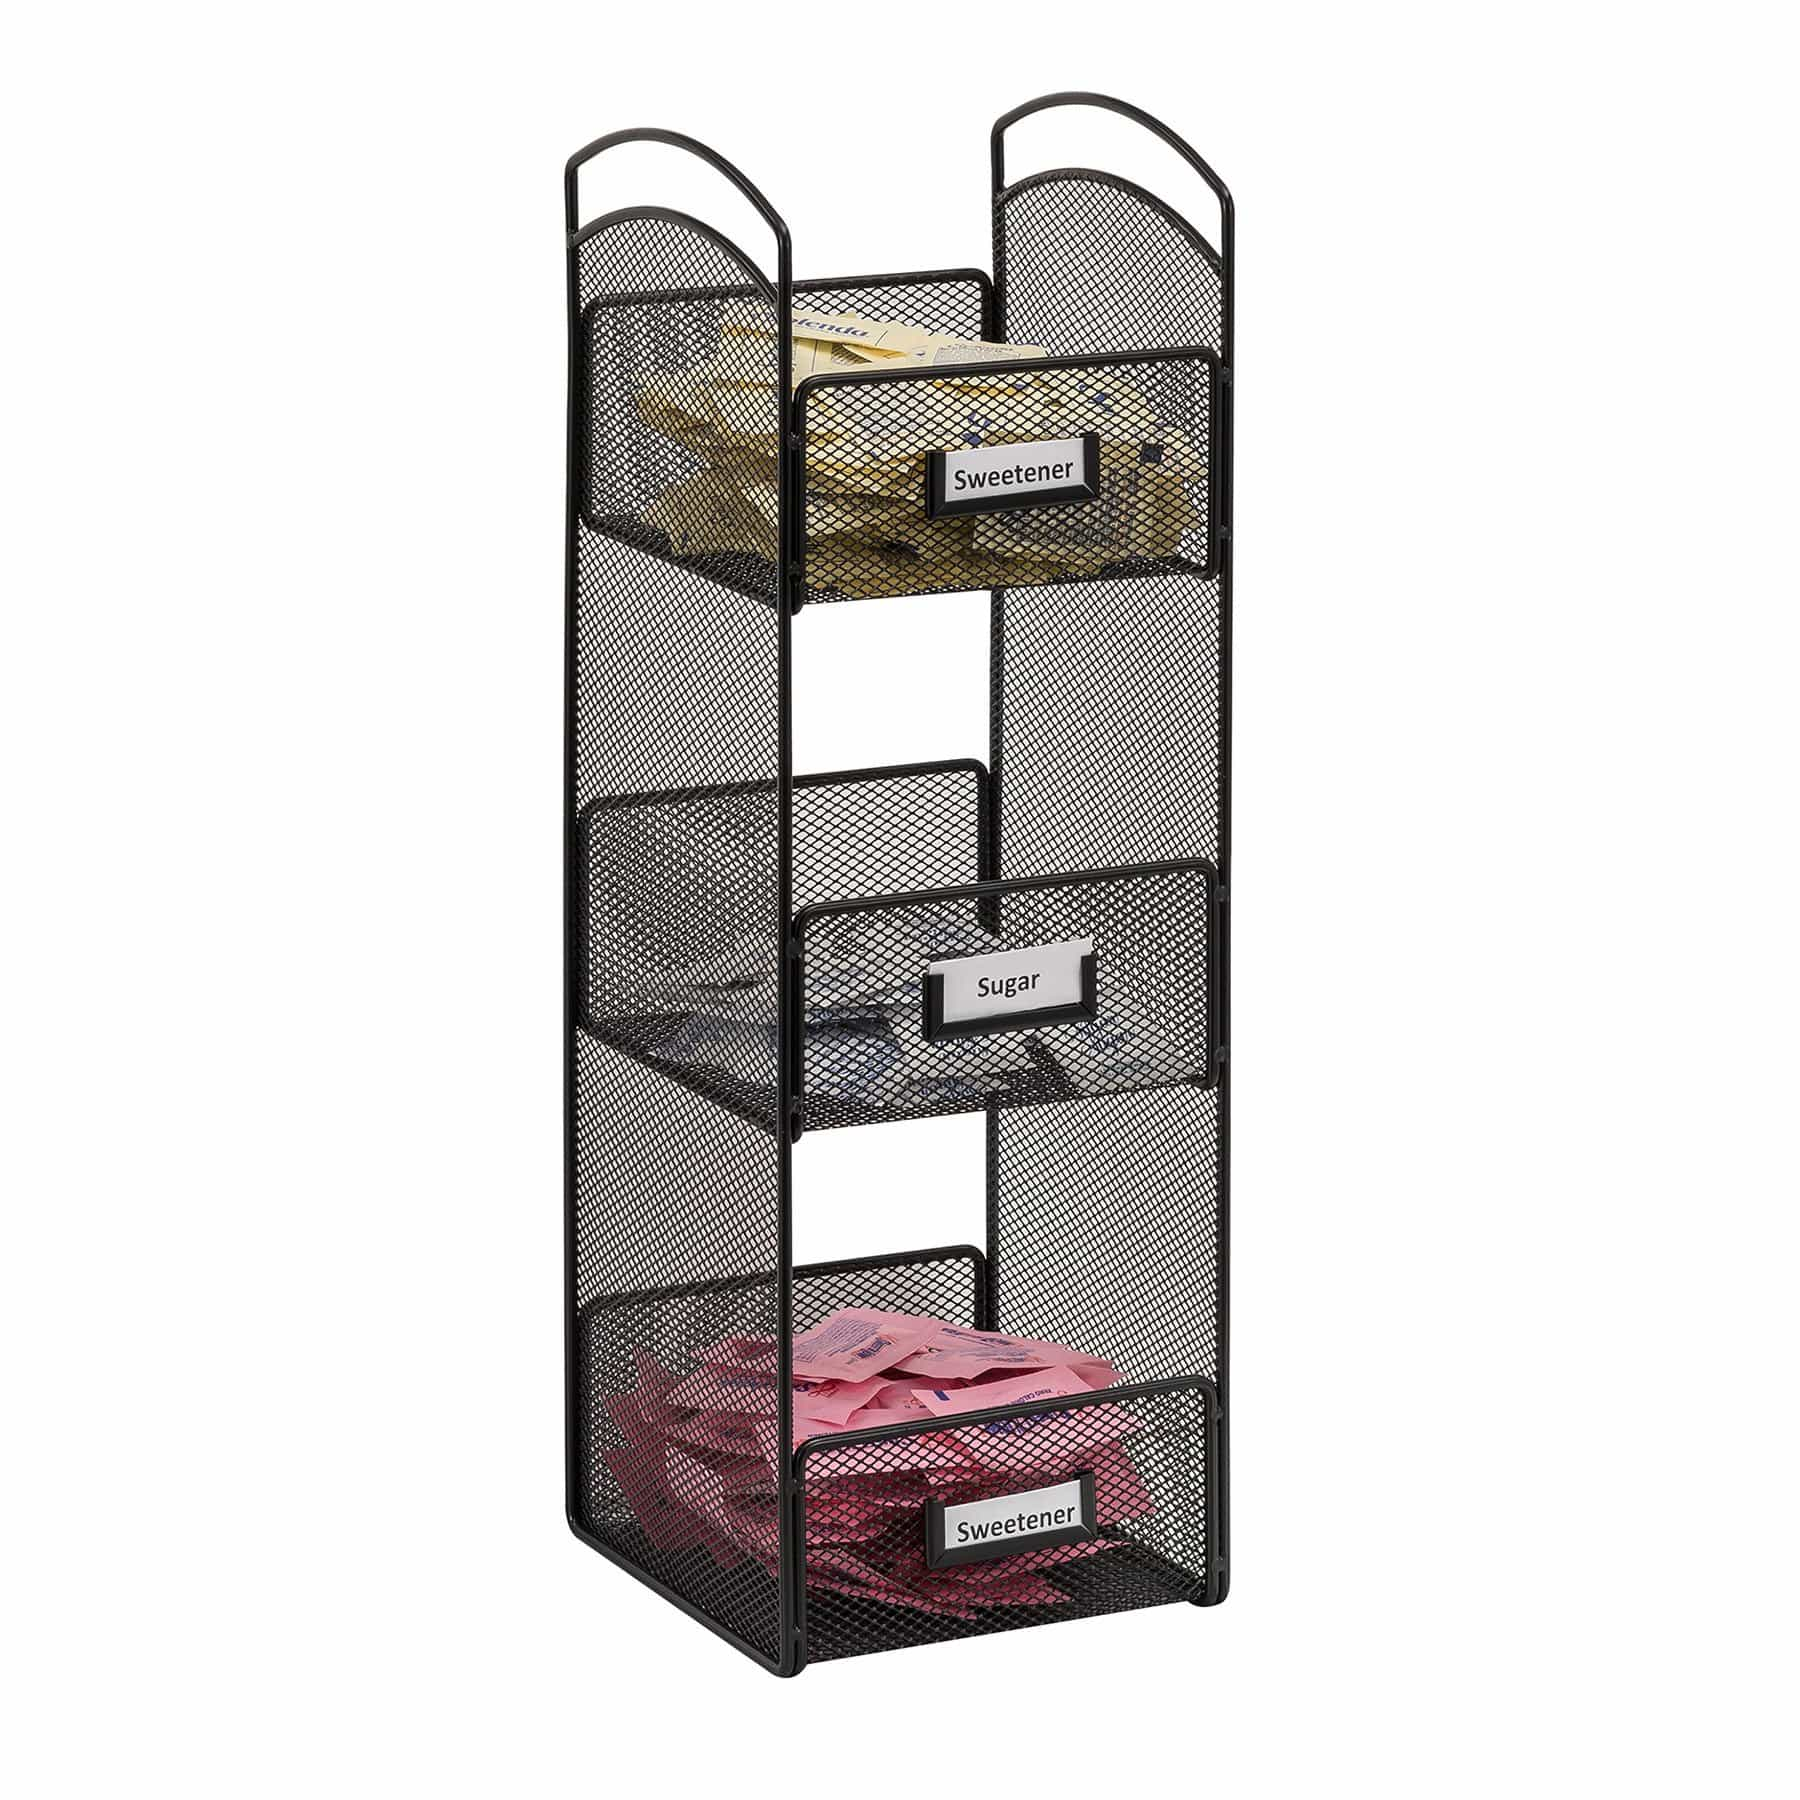 bedinhome - 3290BL Onyx Home Supply Two Metal Wire Handles Three Storage Compartments Tower Break Room Black Organizer - Safco - Break Room Organizer